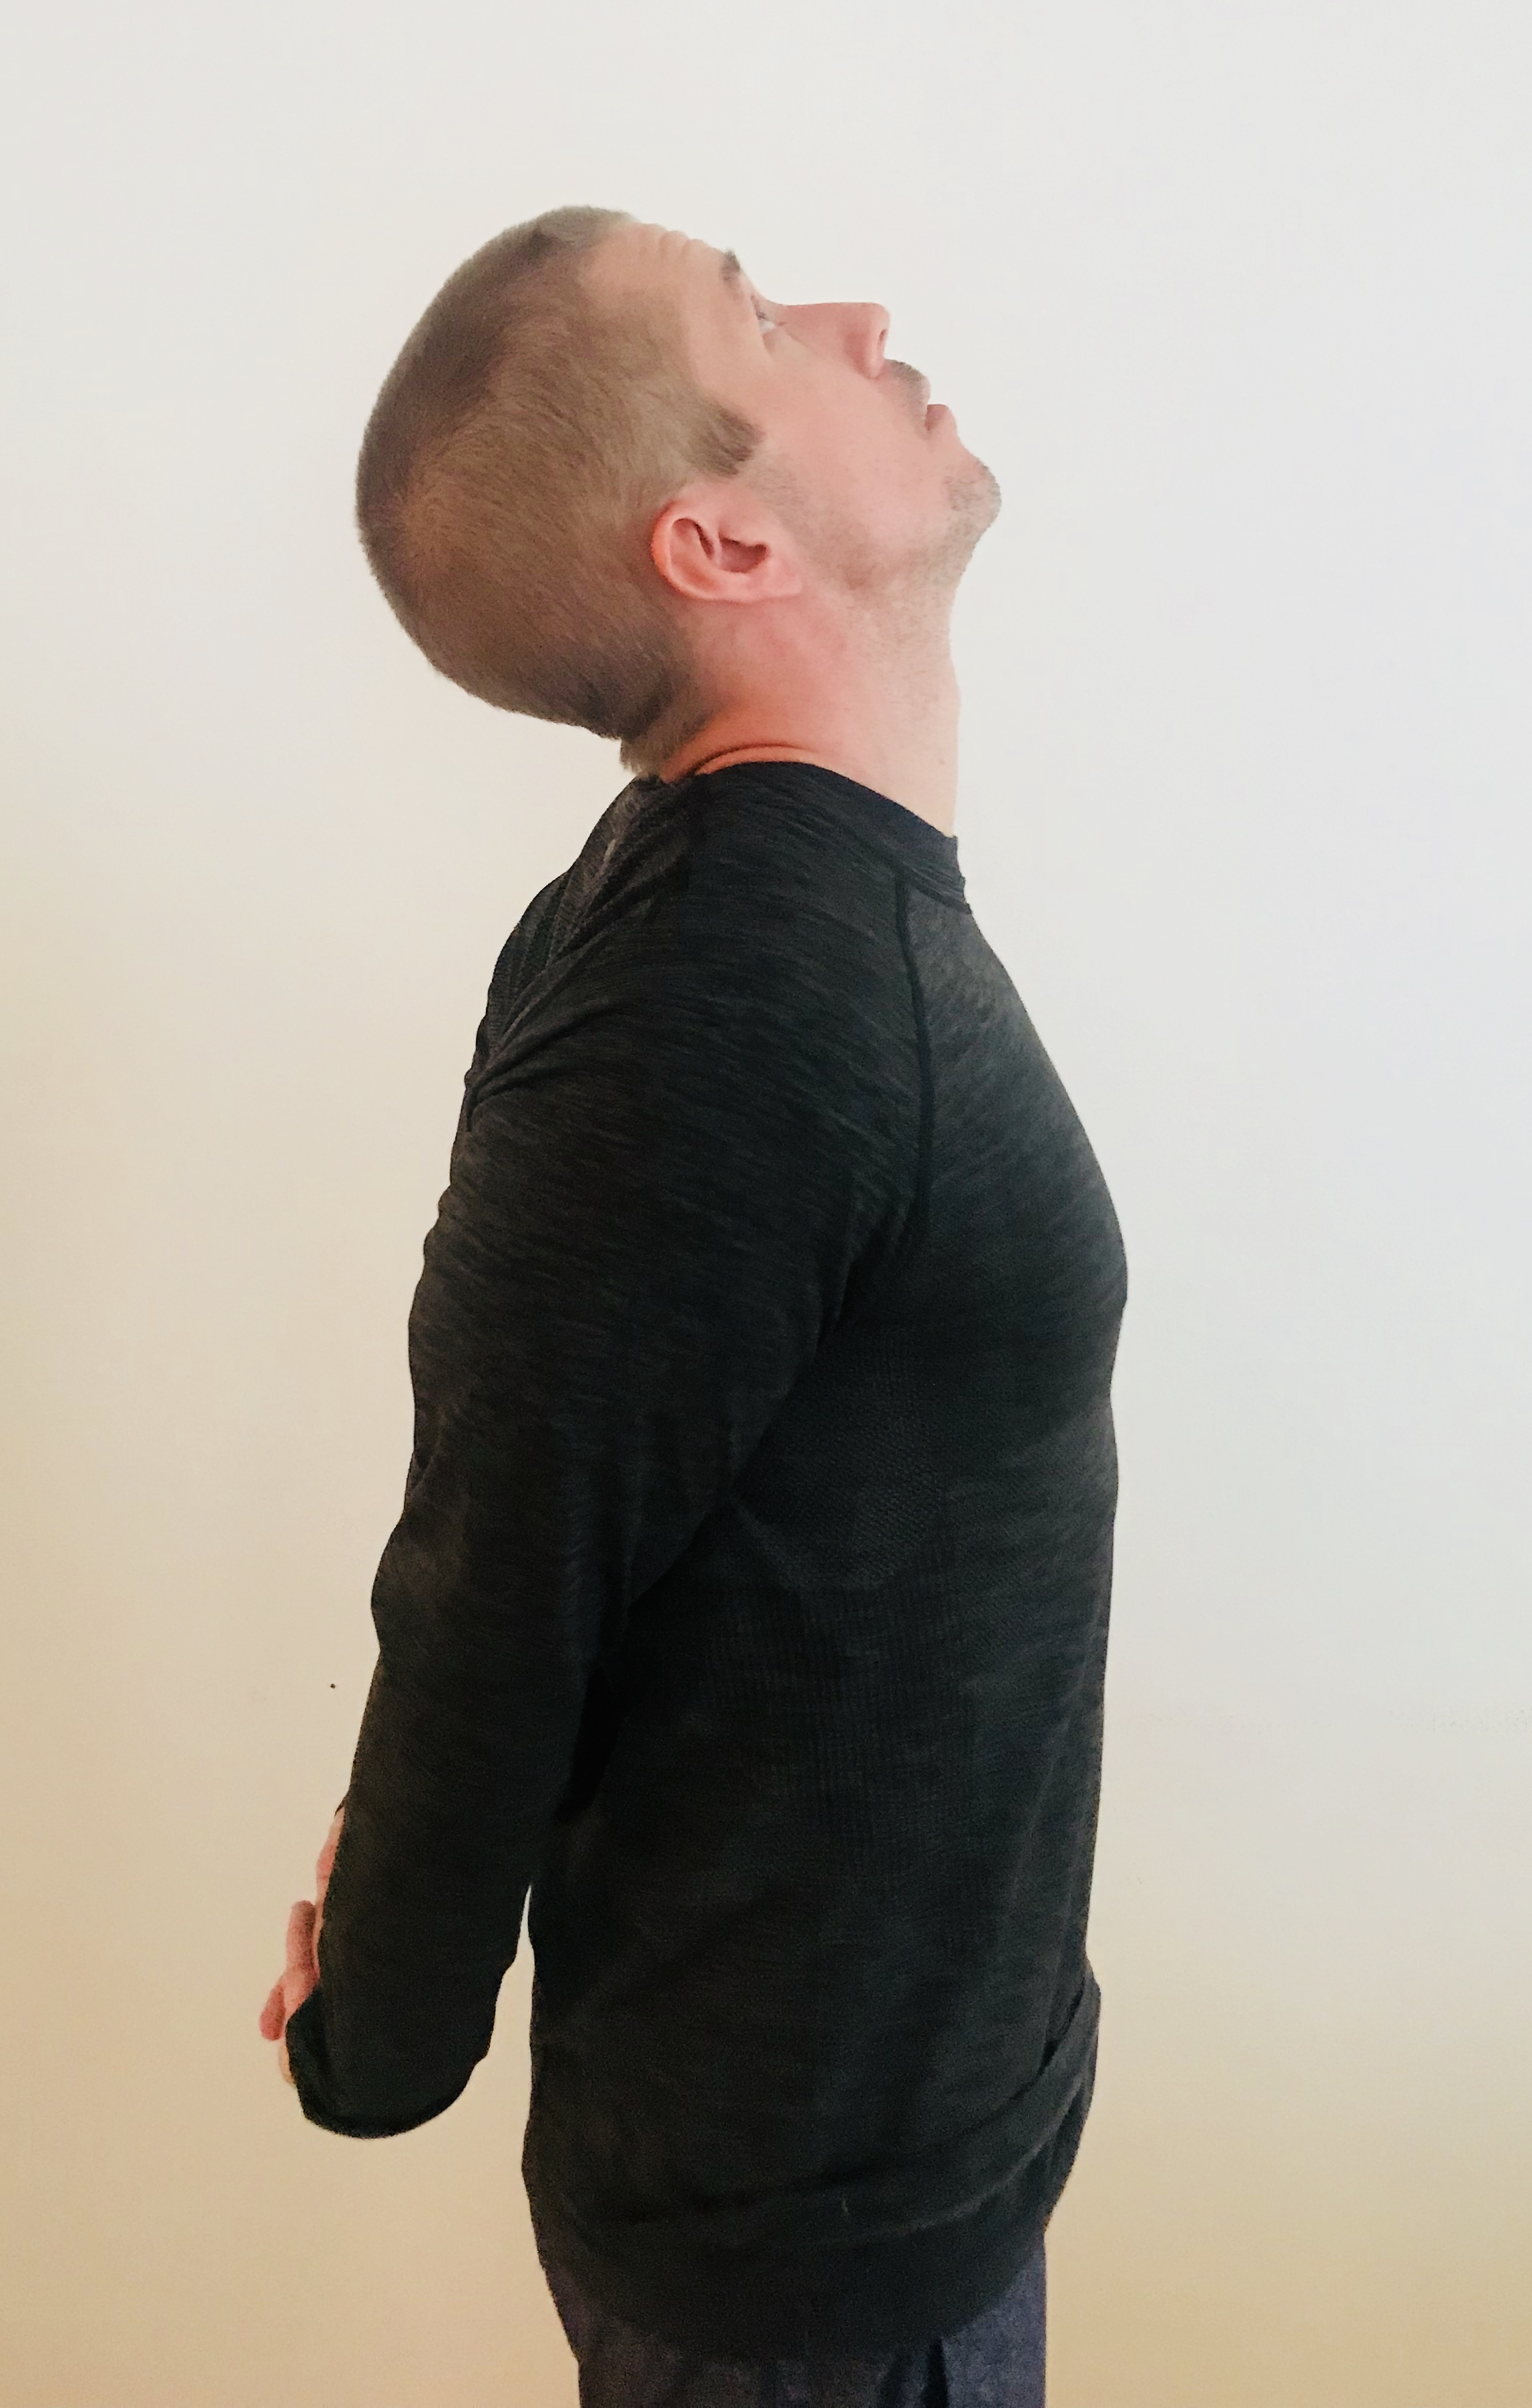 The lookup stretch is perfect for relieving the tension in your neck to help your headaches.